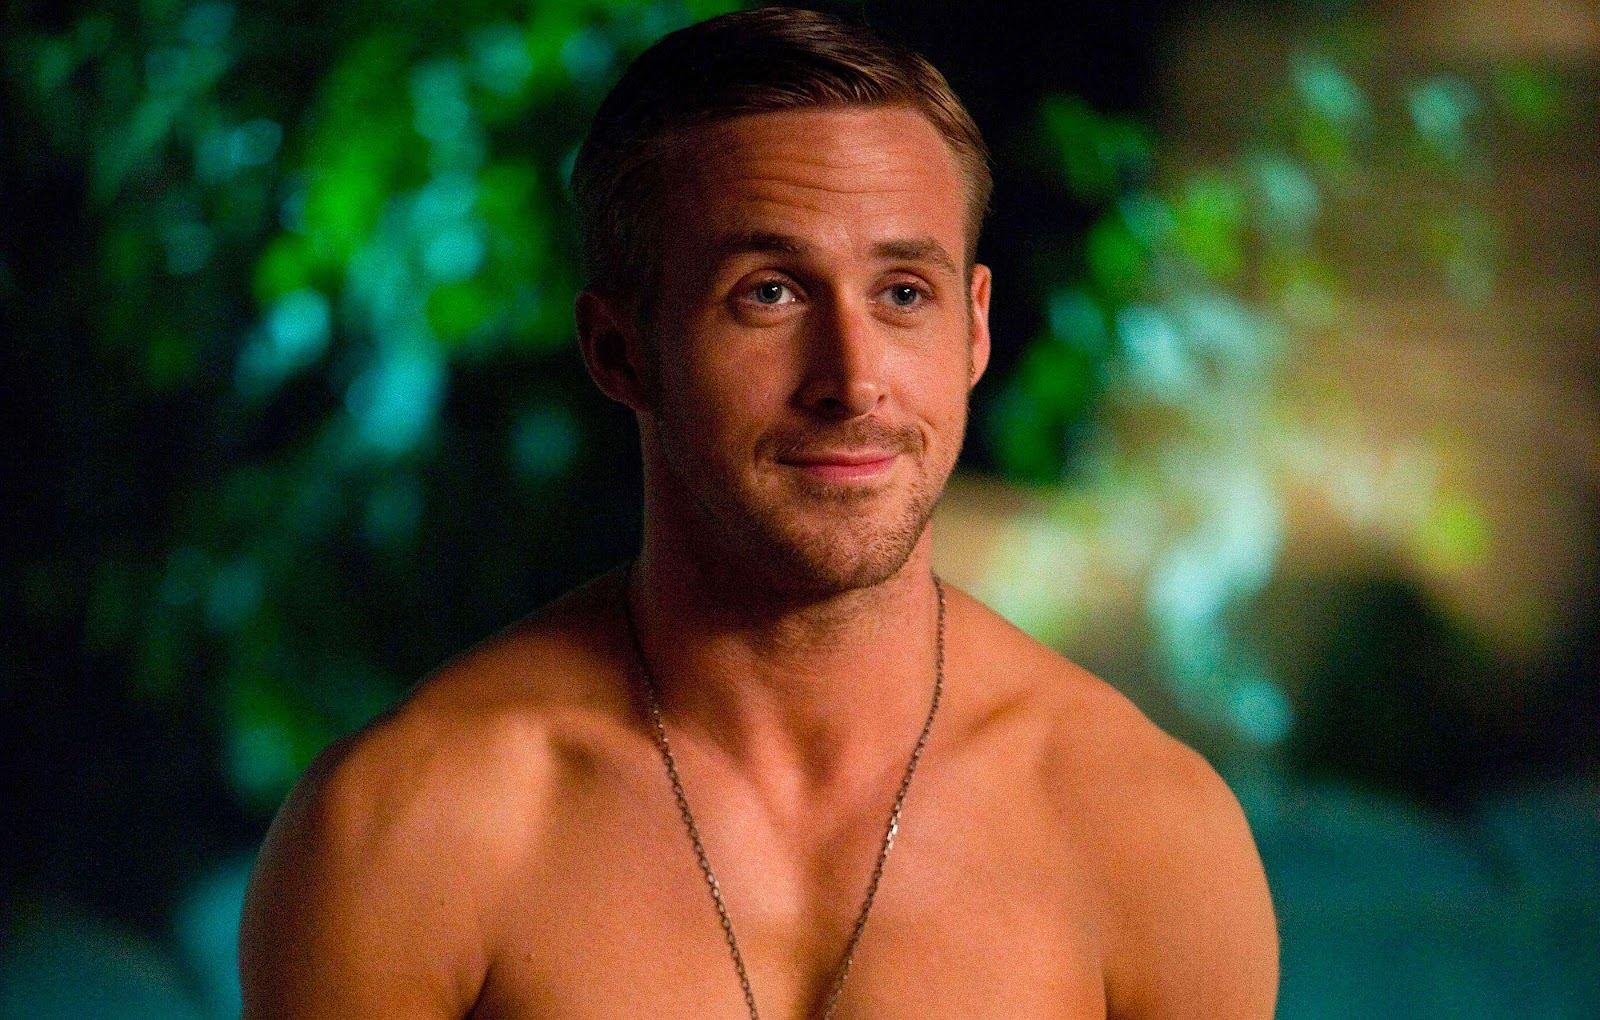 The Ryan Gosling Guide To Being Irresistible